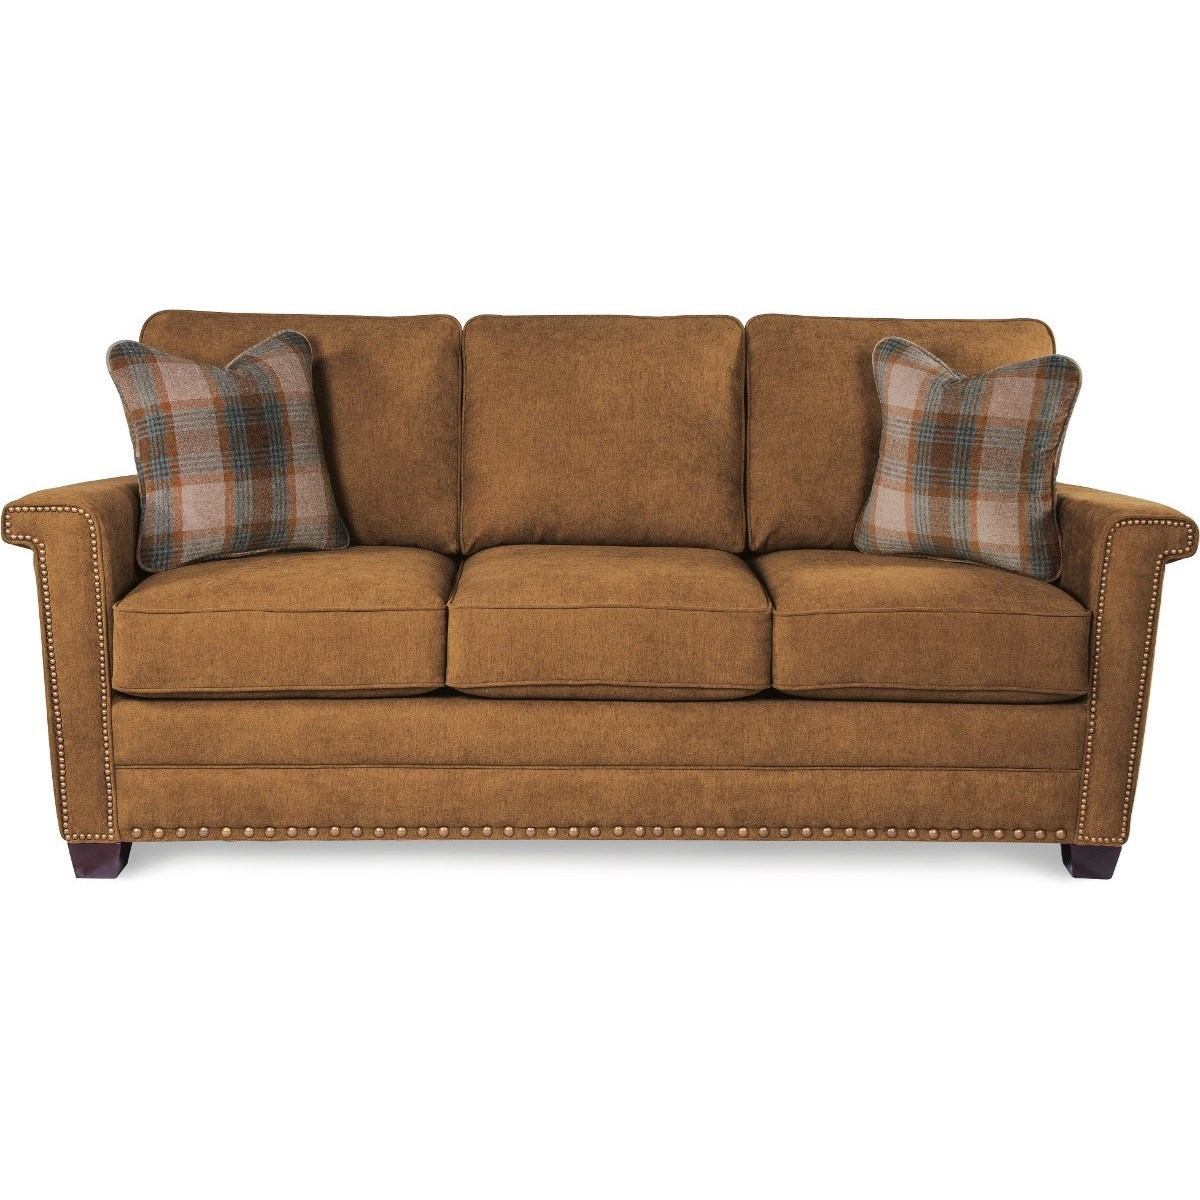 Bexley Sofa by La-Z-Boy at Bennett's Furniture and Mattresses